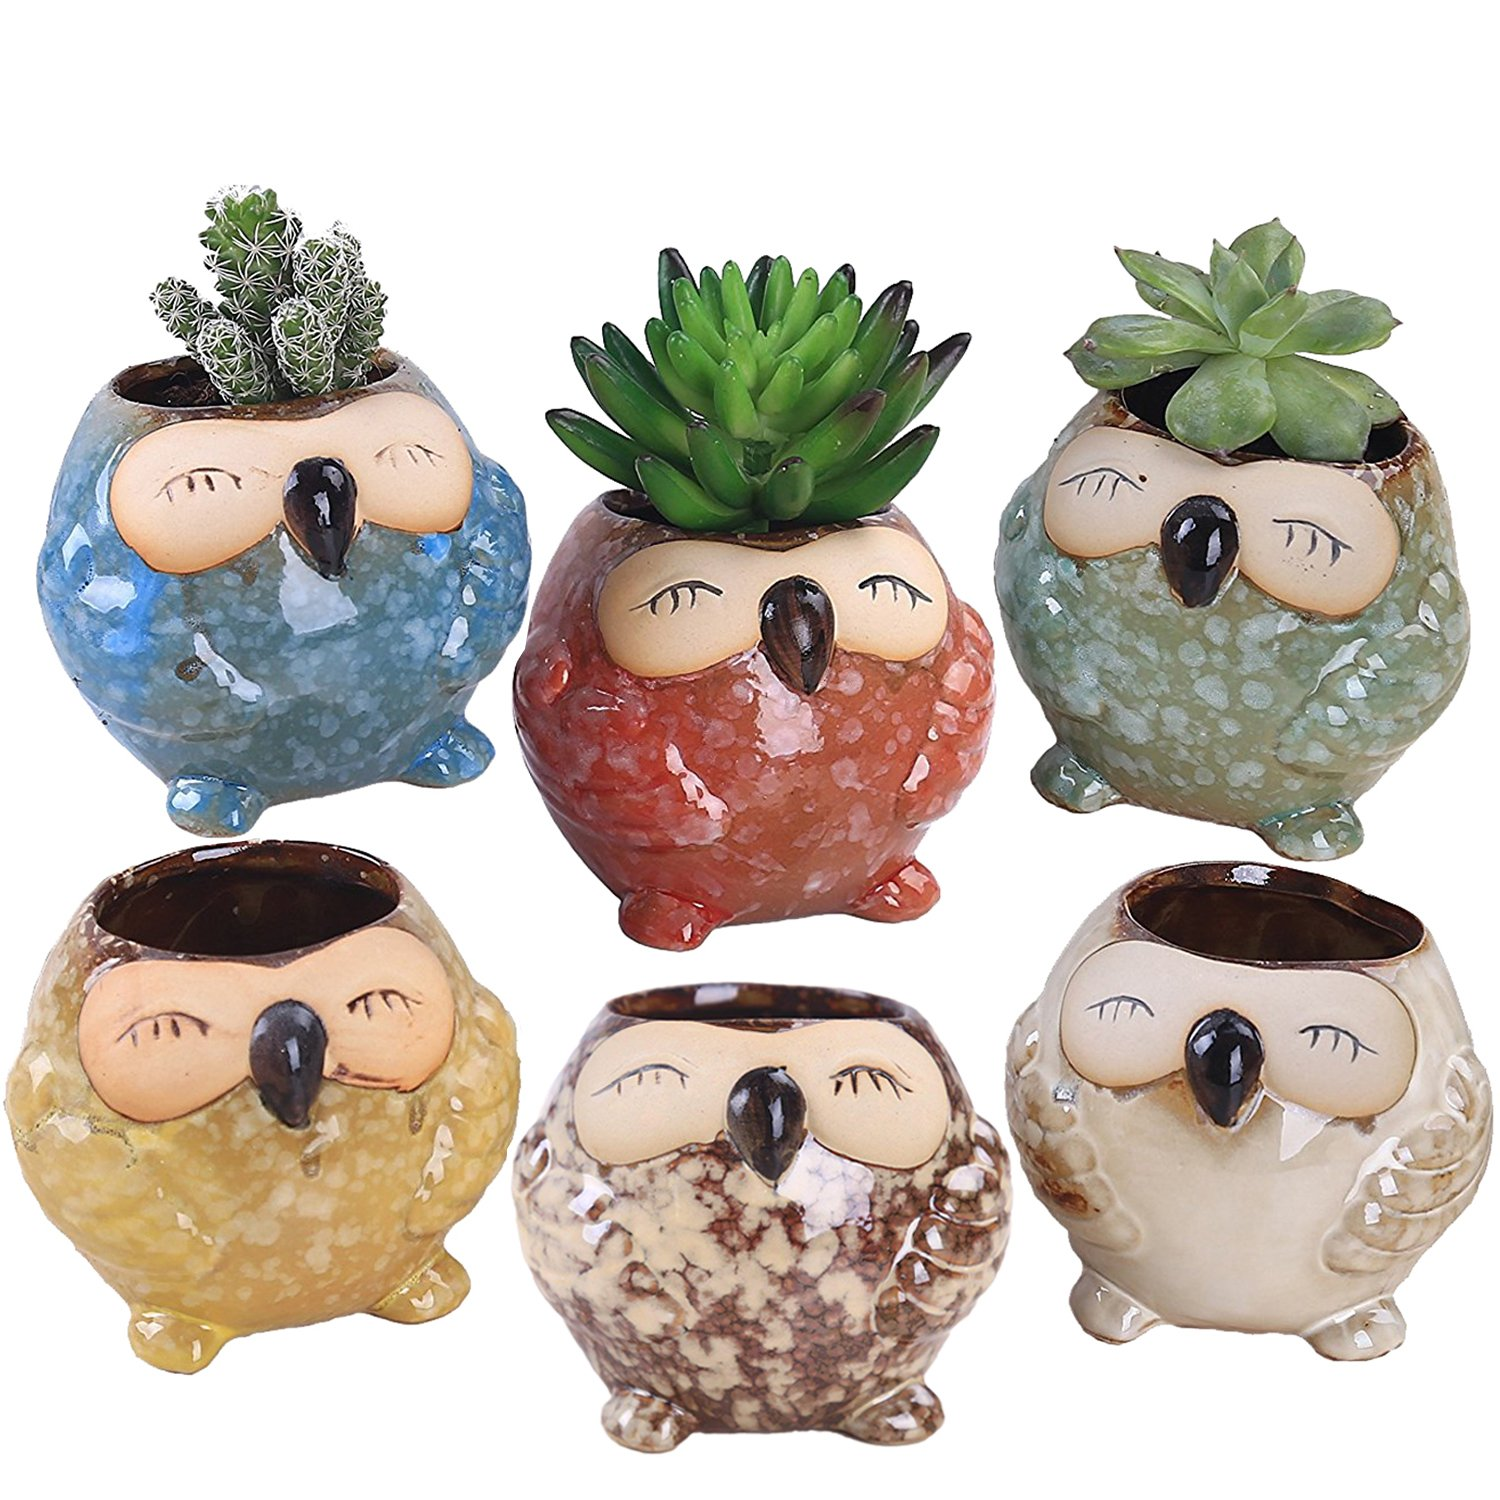 Rose Create 6 Pcs 3 inches Owl Pots, Little Ceramic Succulent Owl Planters with Drainage Holes - (Big Smile Owls) by ROSE CREATE